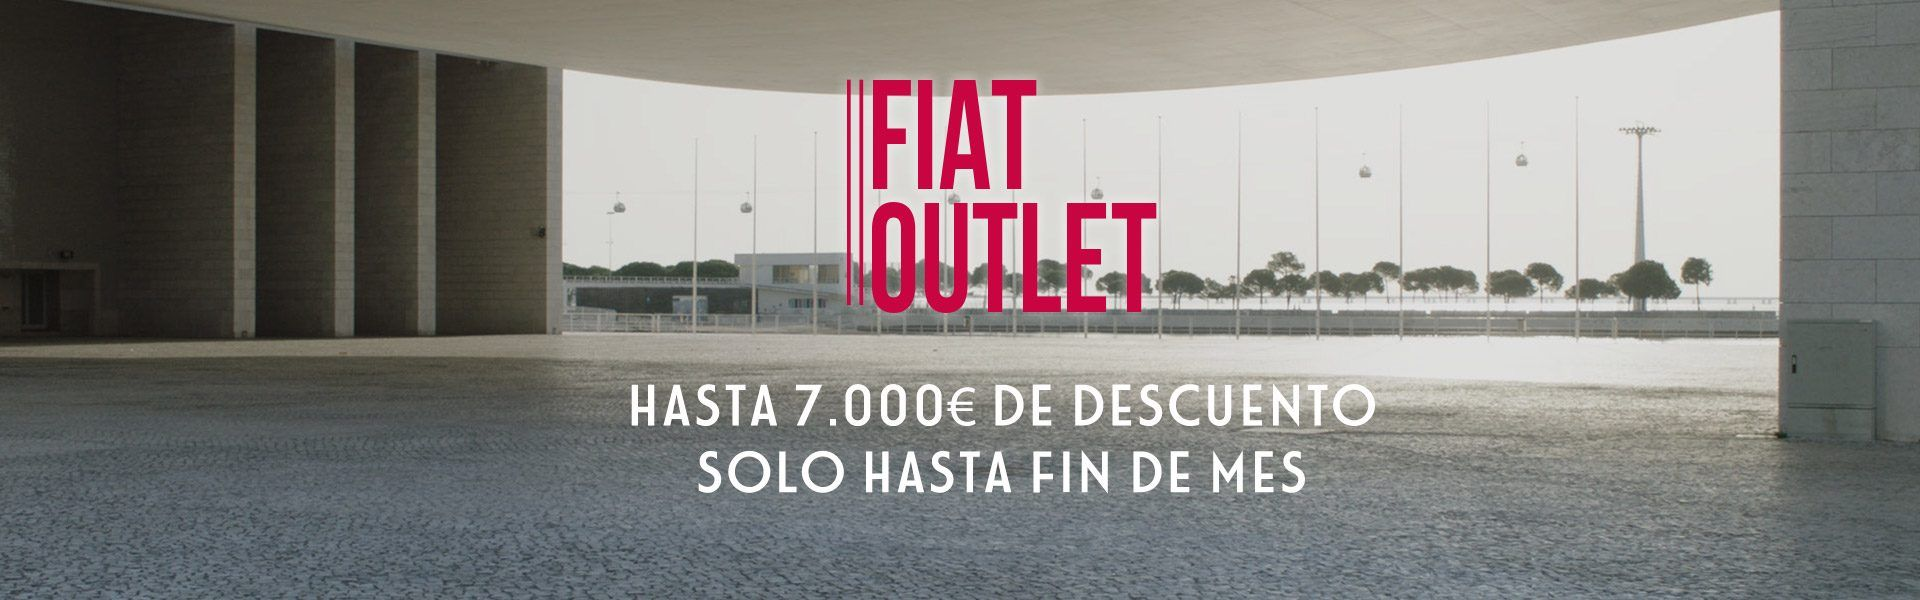 FIAT OUTLET.